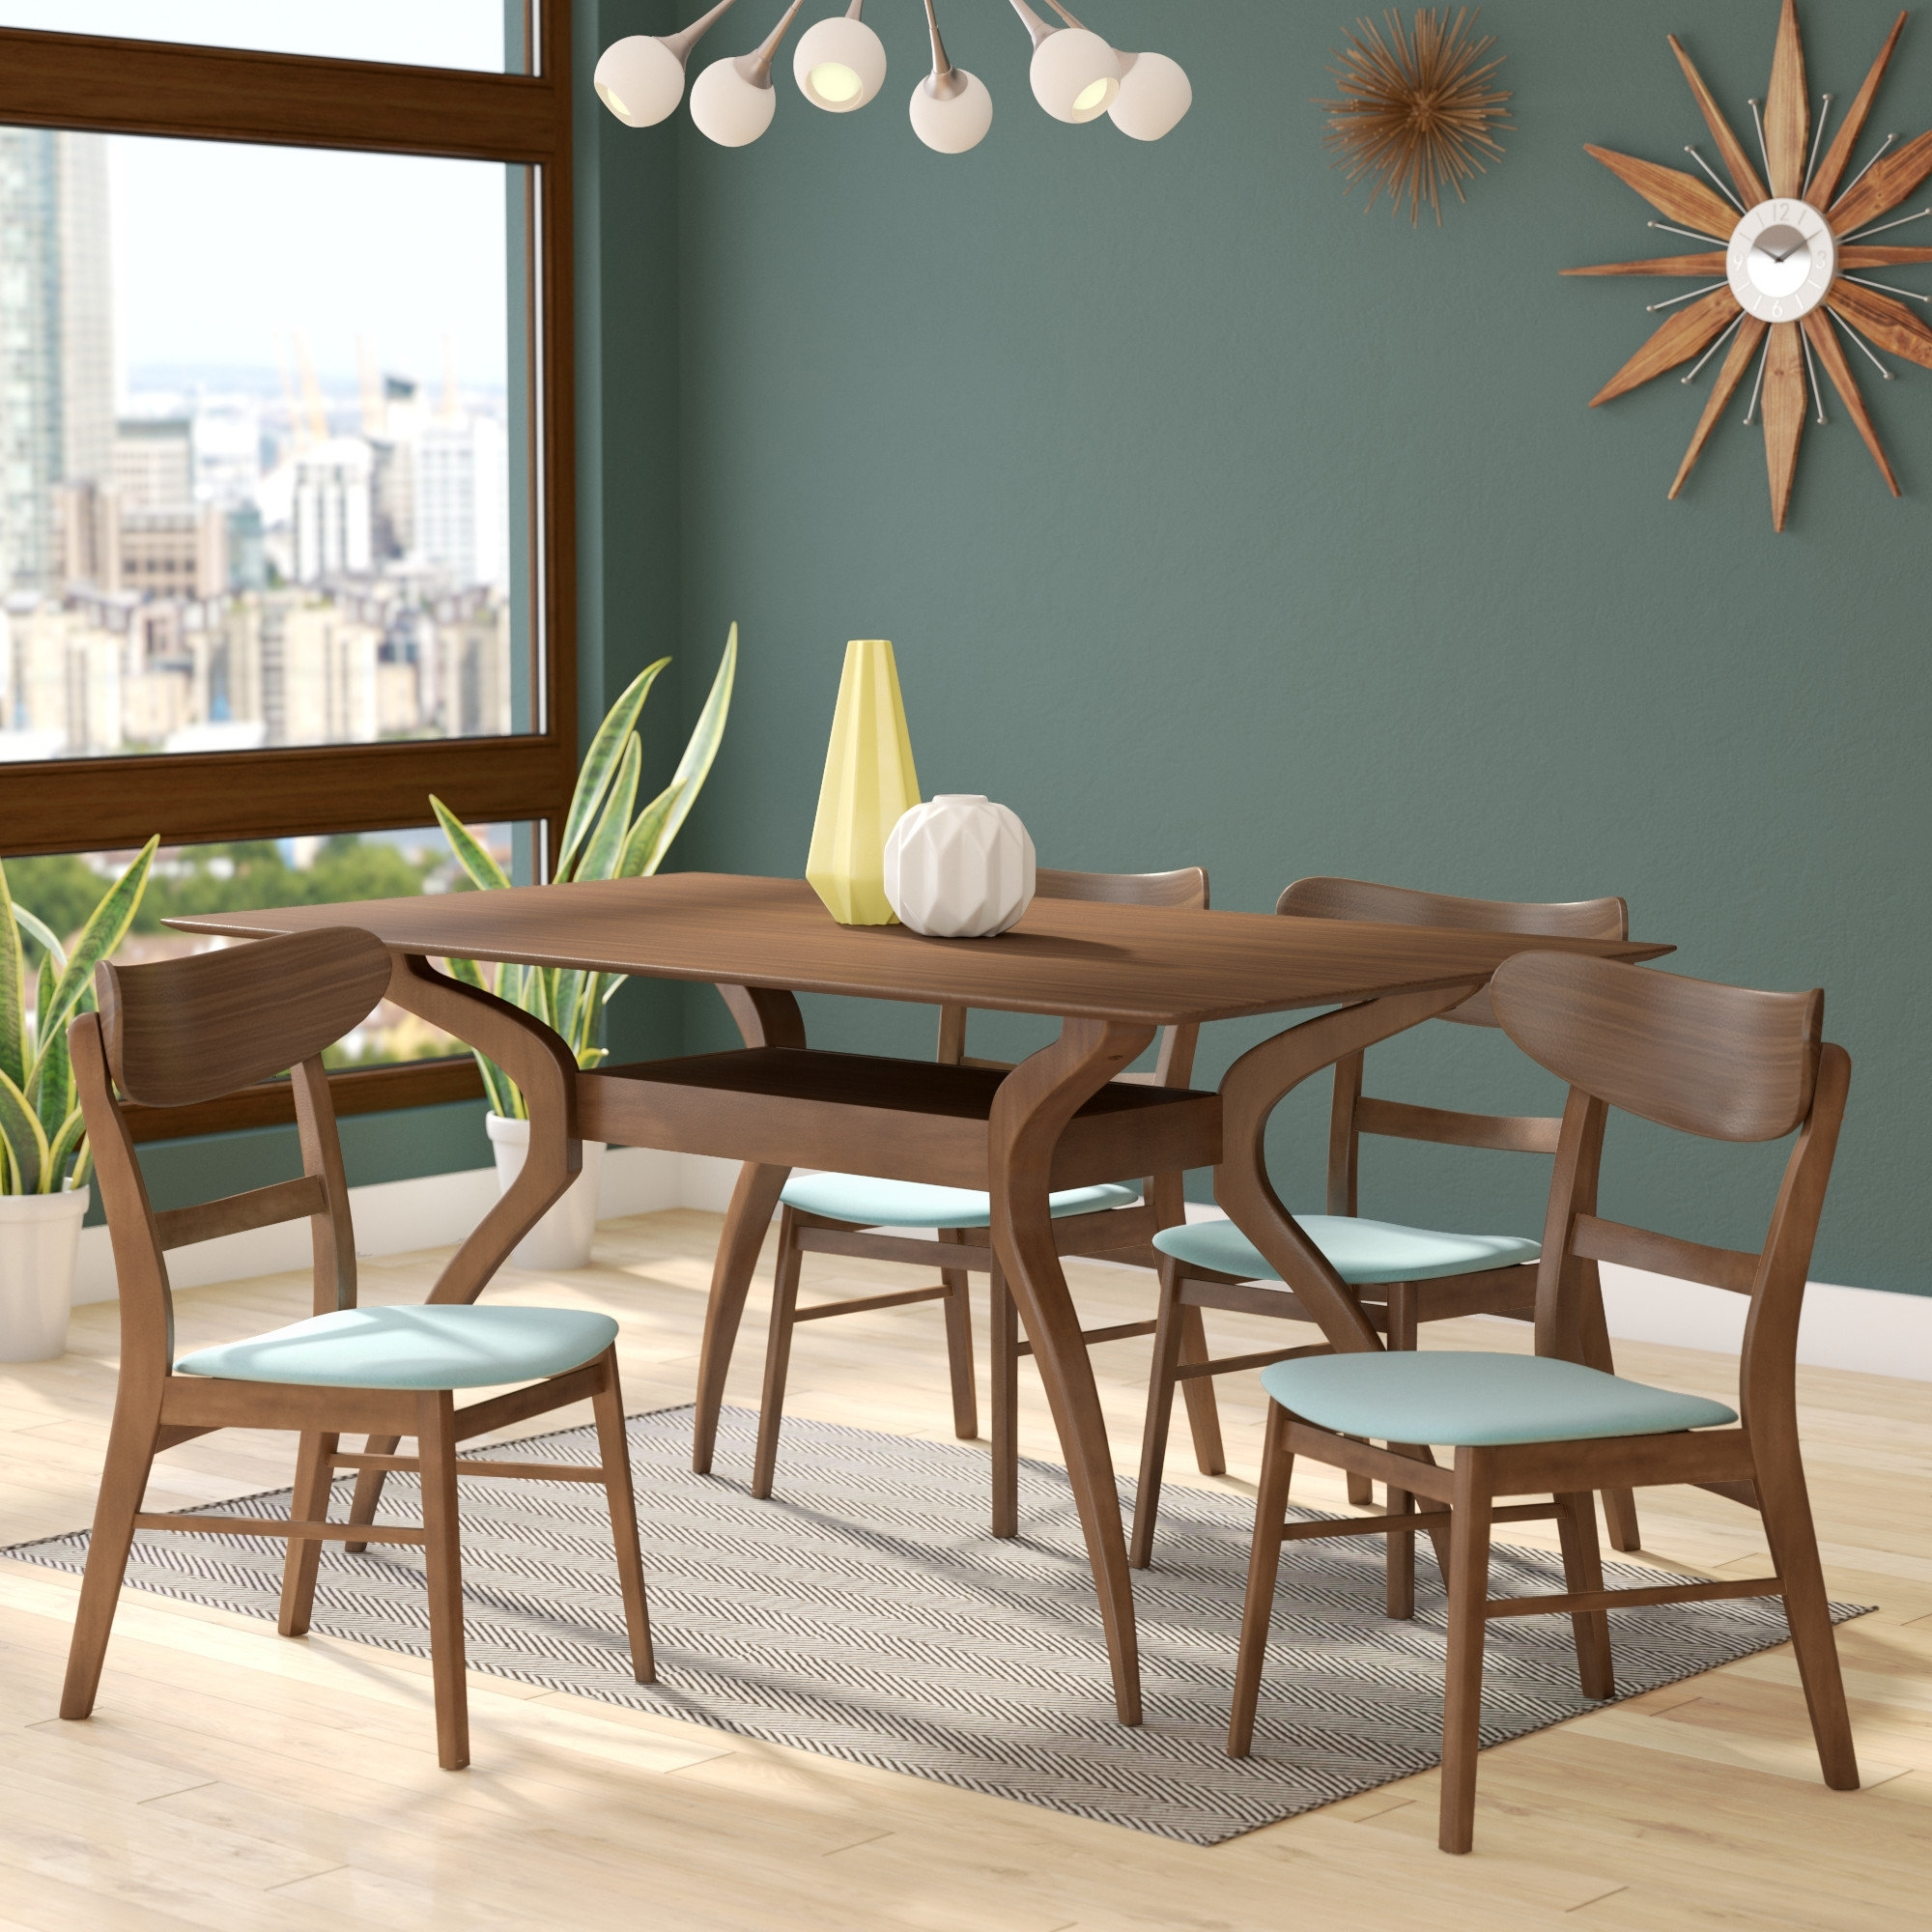 Langley Street Patterson 5 Piece Dining Set & Reviews | Wayfair Pertaining To Recent Patterson 6 Piece Dining Sets (View 3 of 20)